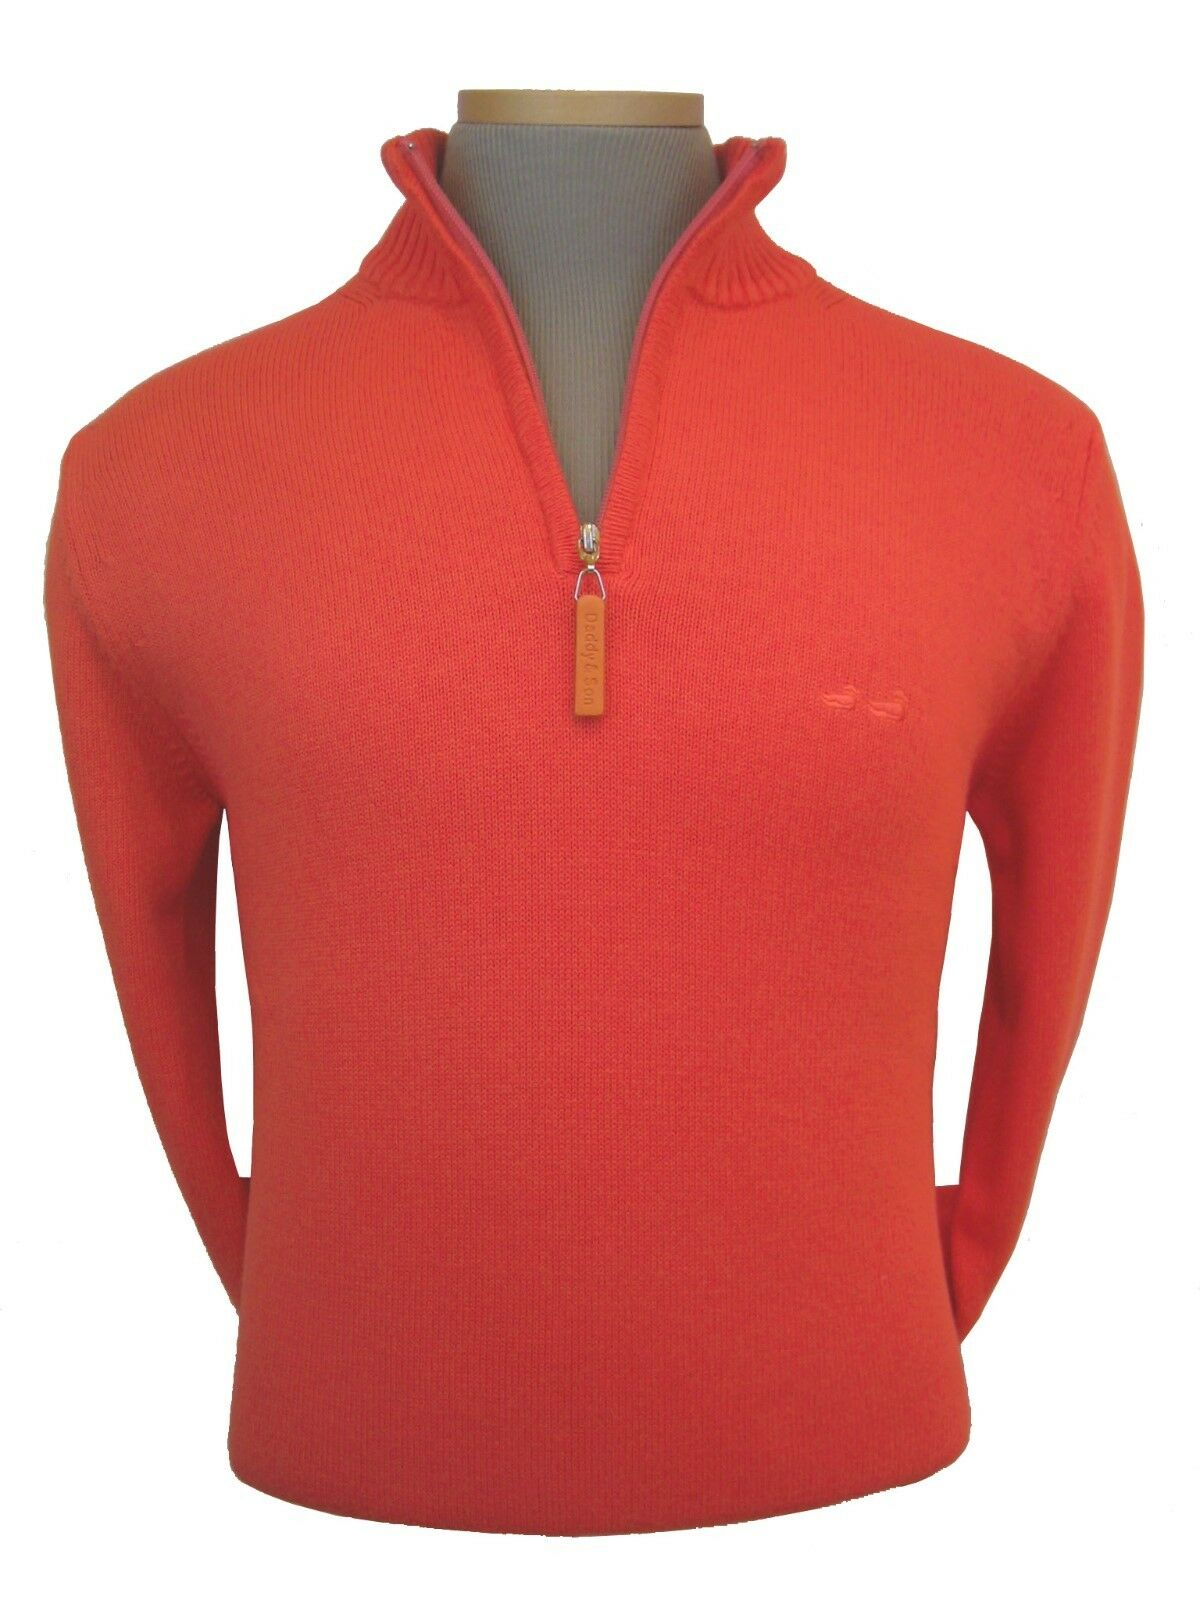 Sweater - Men's - S -  Cotton - 1 2 Zip - Lobster  - Imported From